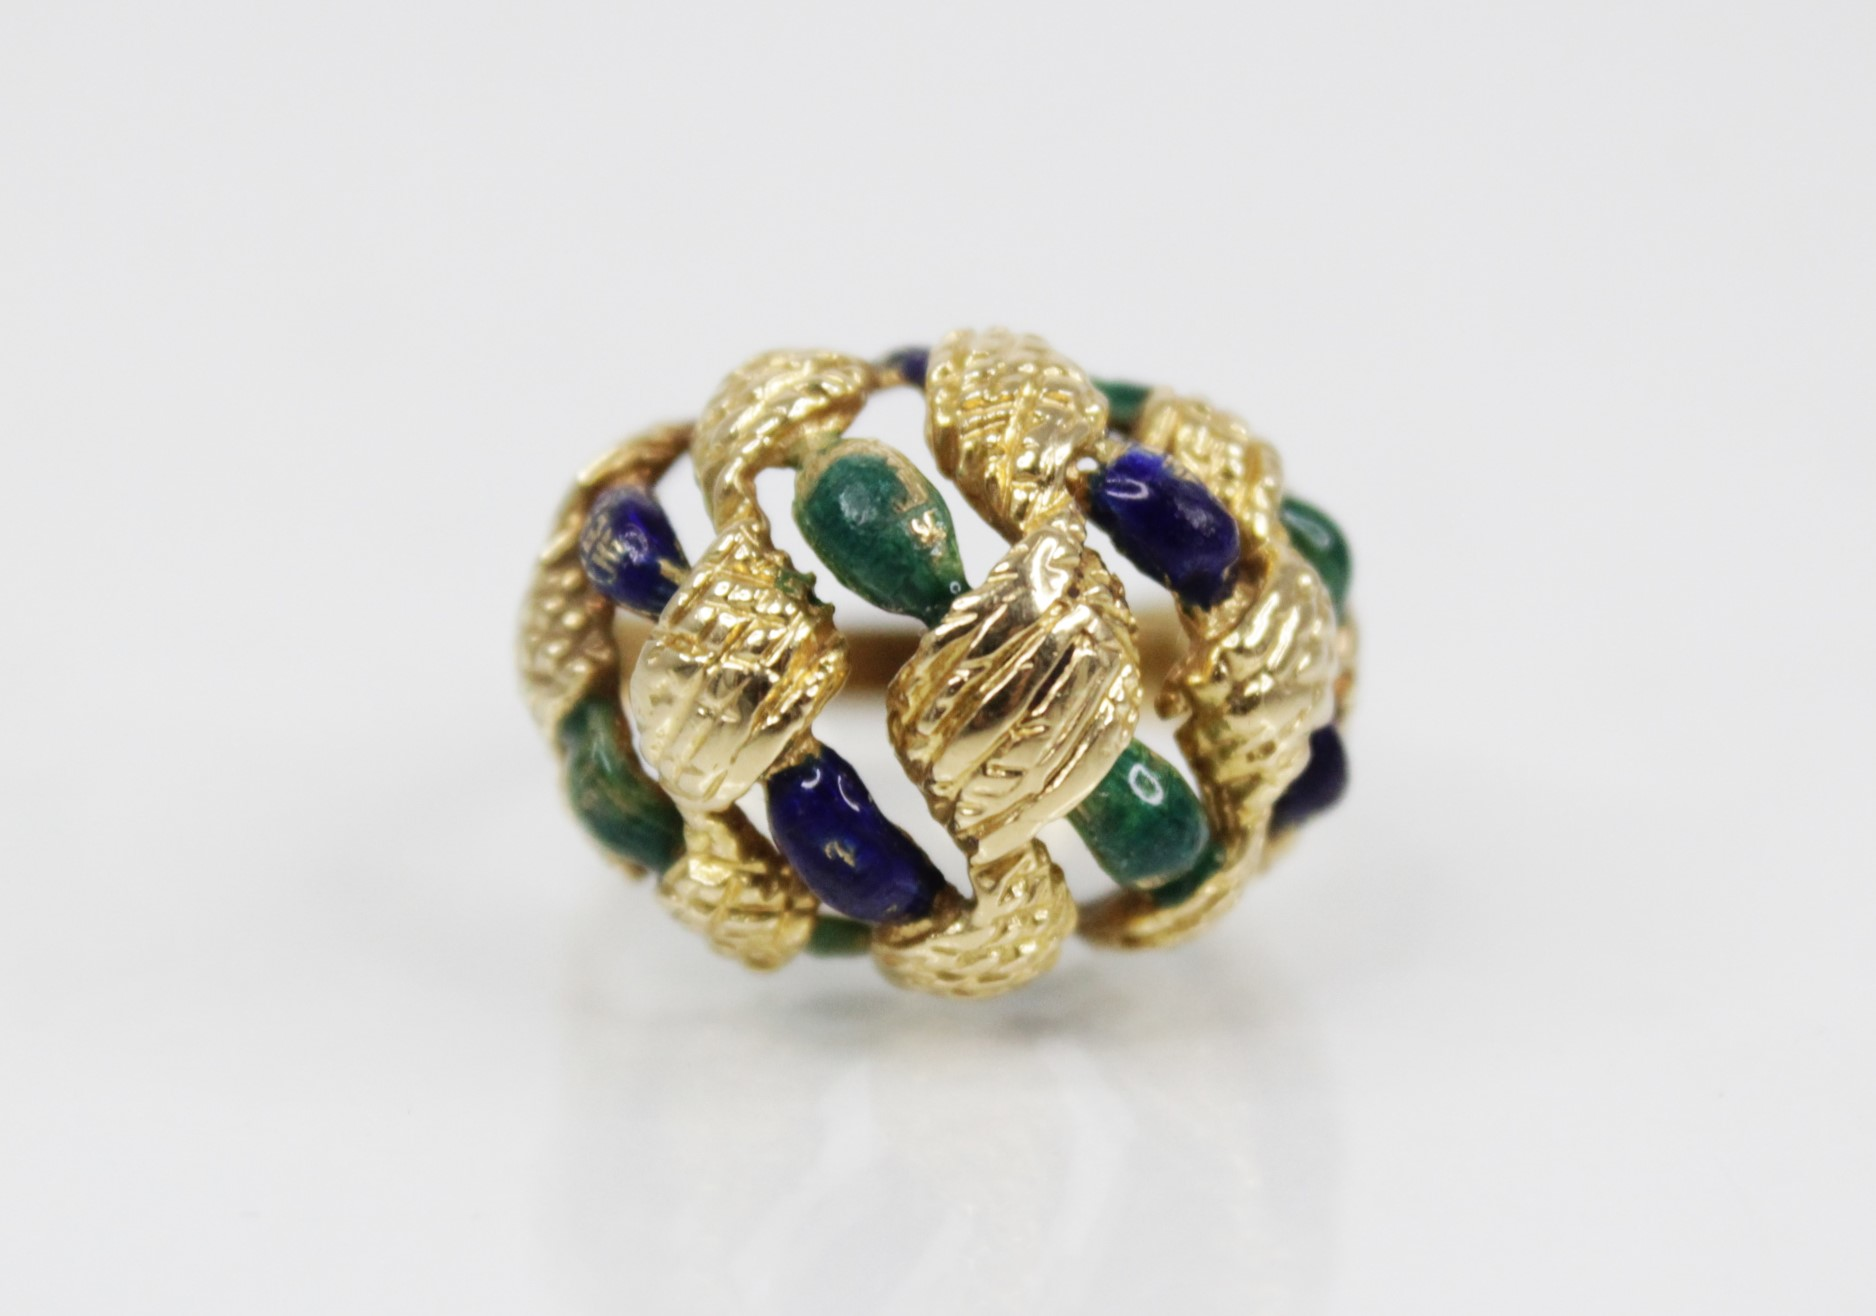 An 18ct gold enamelled 'bombe' ring, the openwork woven design head with textured engraving and blue